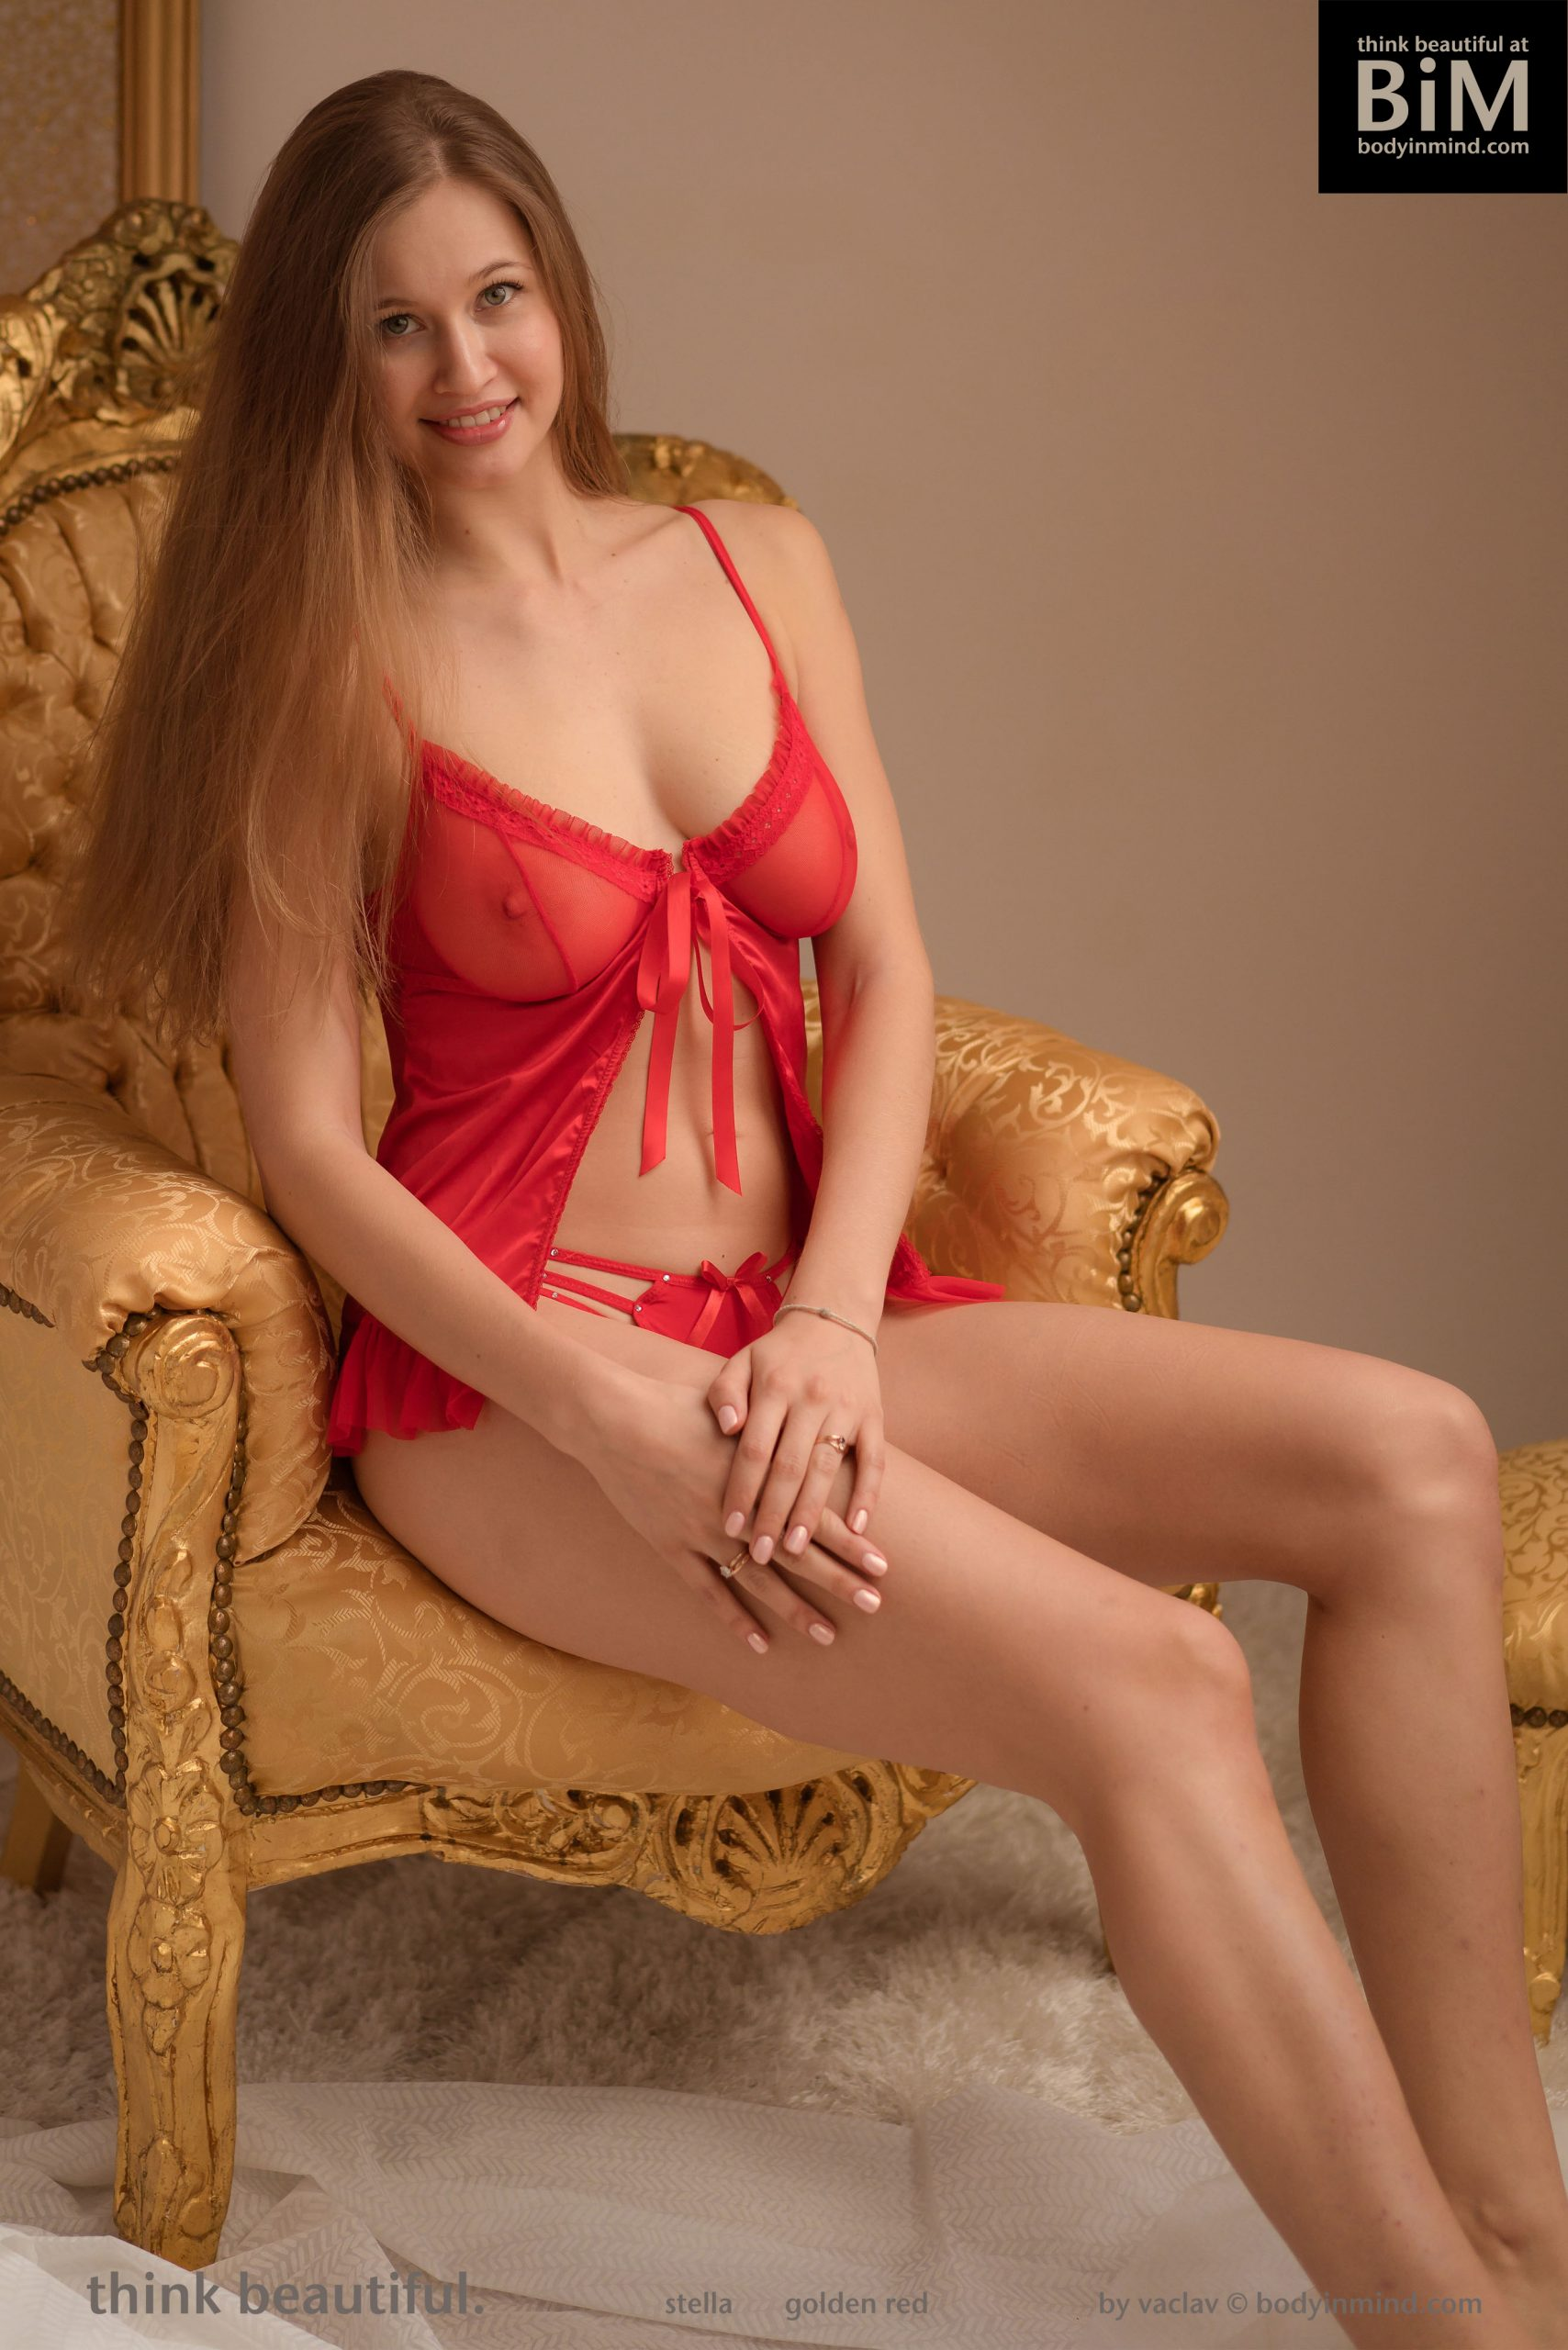 Stella Cardo Big Tit Redhead with Sexy Red Lingerie for Body in Mind